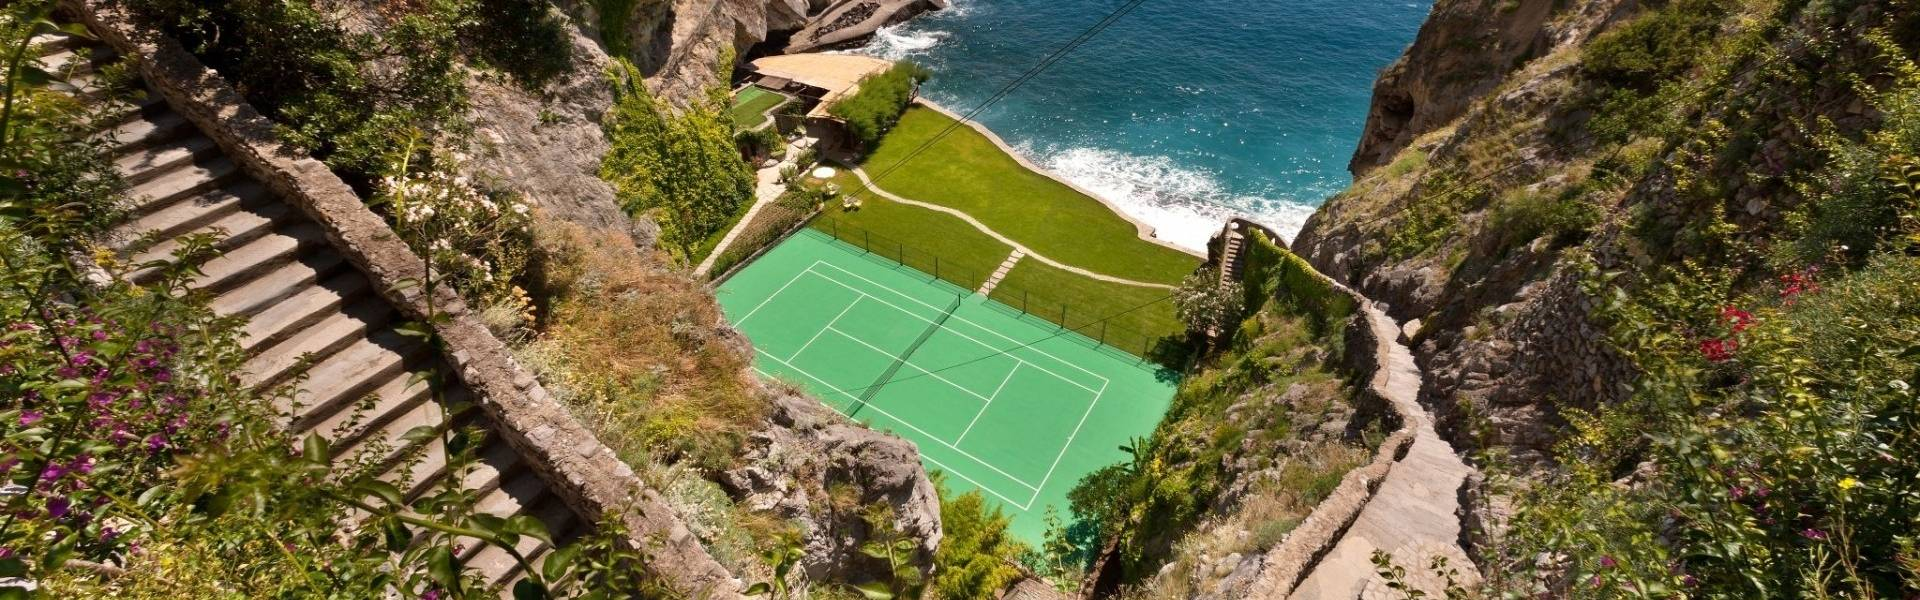 Aerial view of the tennis court at Il San Pietro